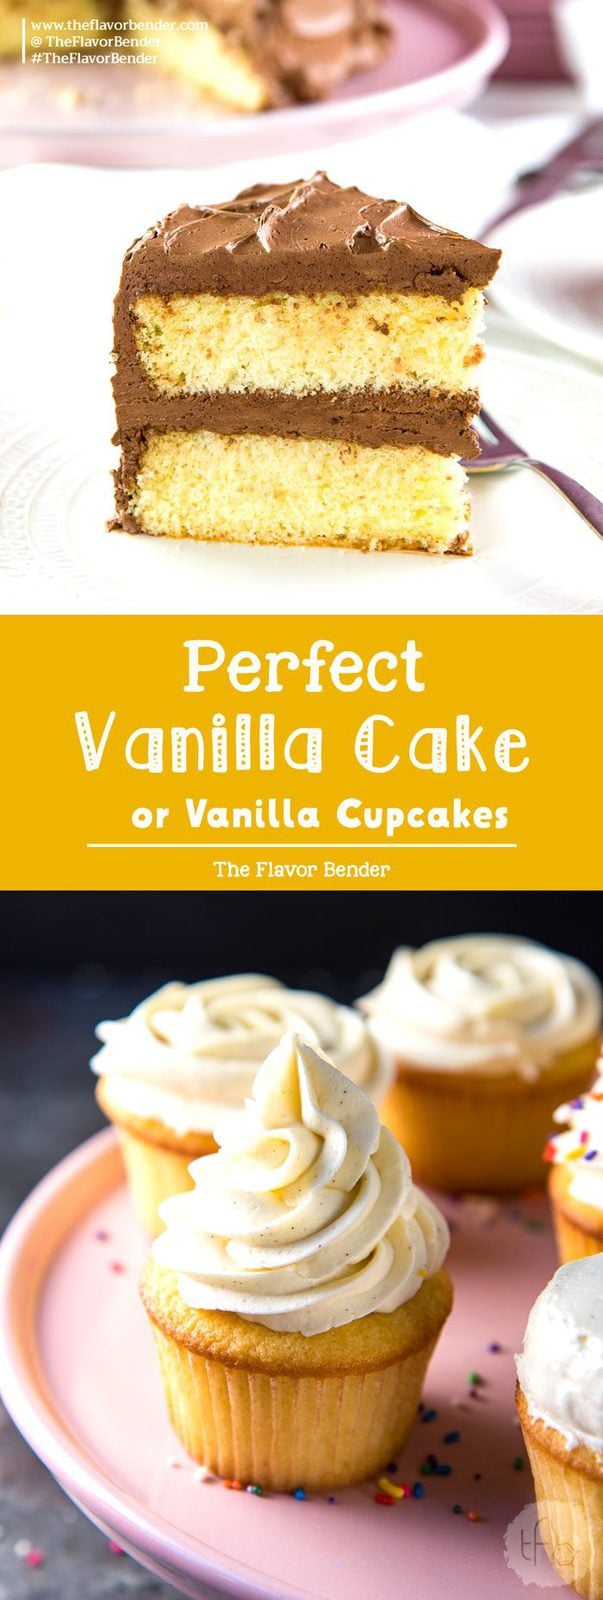 The Best Vanilla Cake - Delightfully soft, buttery, classic vanilla cake with a creamy chocolate or vanilla frosting! With heaps of tips to get perfect cakes every single time. #VanillaCake #VanillaCupcakes #VanillaCakeGuide